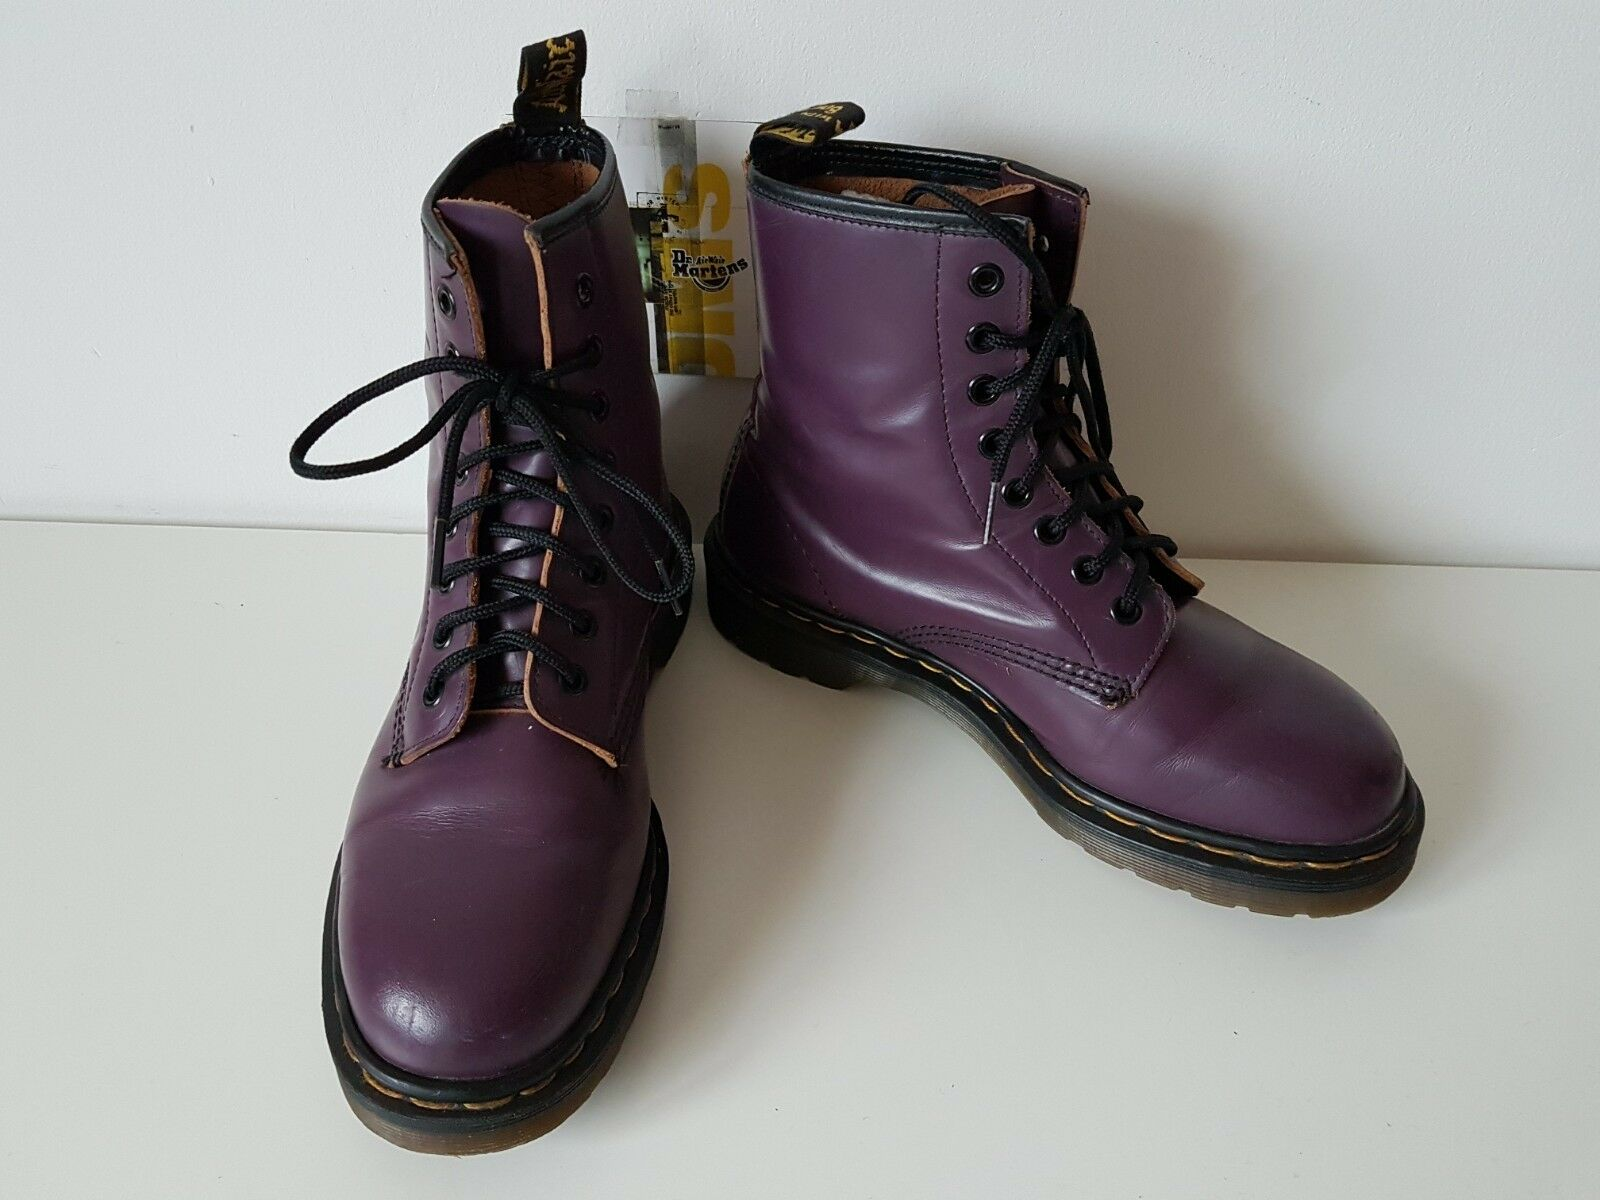 MADE IN ENGLAND Dr Martens 1460 purple boots UK 5 EU 38 goth punk